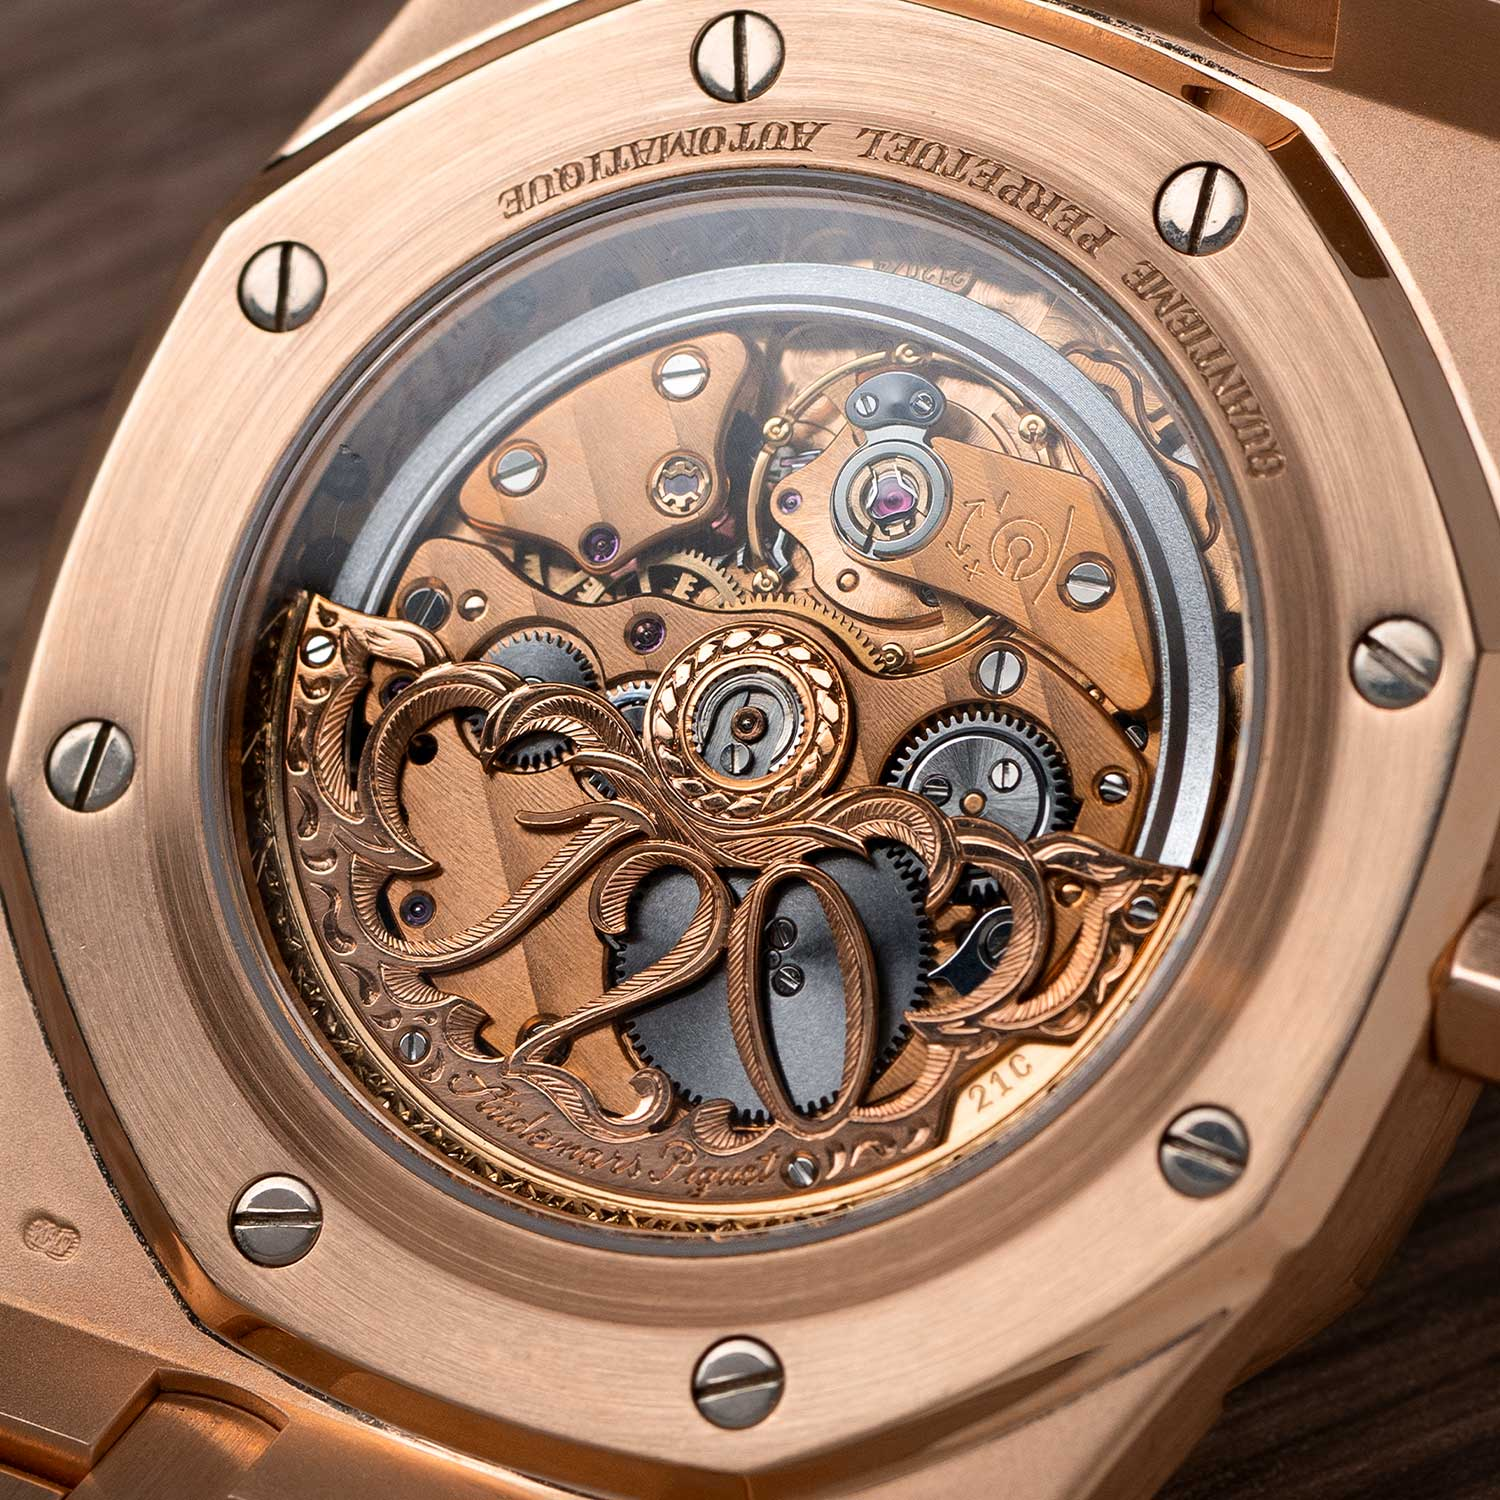 "On the rotor of the limited edition ref. 25810.OR.01: a lavish hand engraved decoration showcasing the numbers ""120"" in marking Audemars Piguet's 120th anniversary; the watch seen here is presently part of the Pygmalion Gallery's private collection (Image: Photo and watch, property of Pygmalion Gallery)"